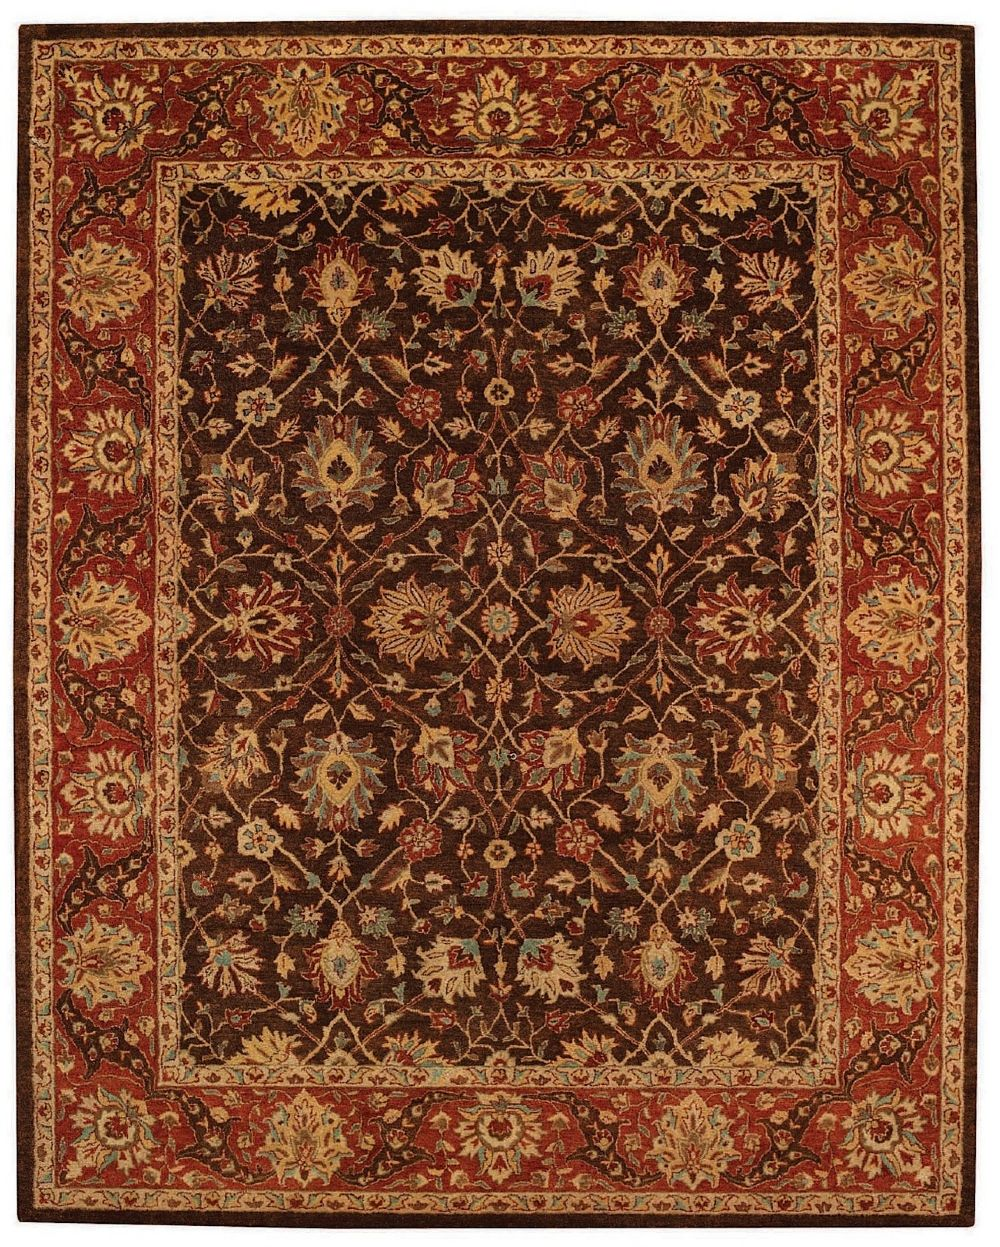 capel monticello-herati traditional area rug collection